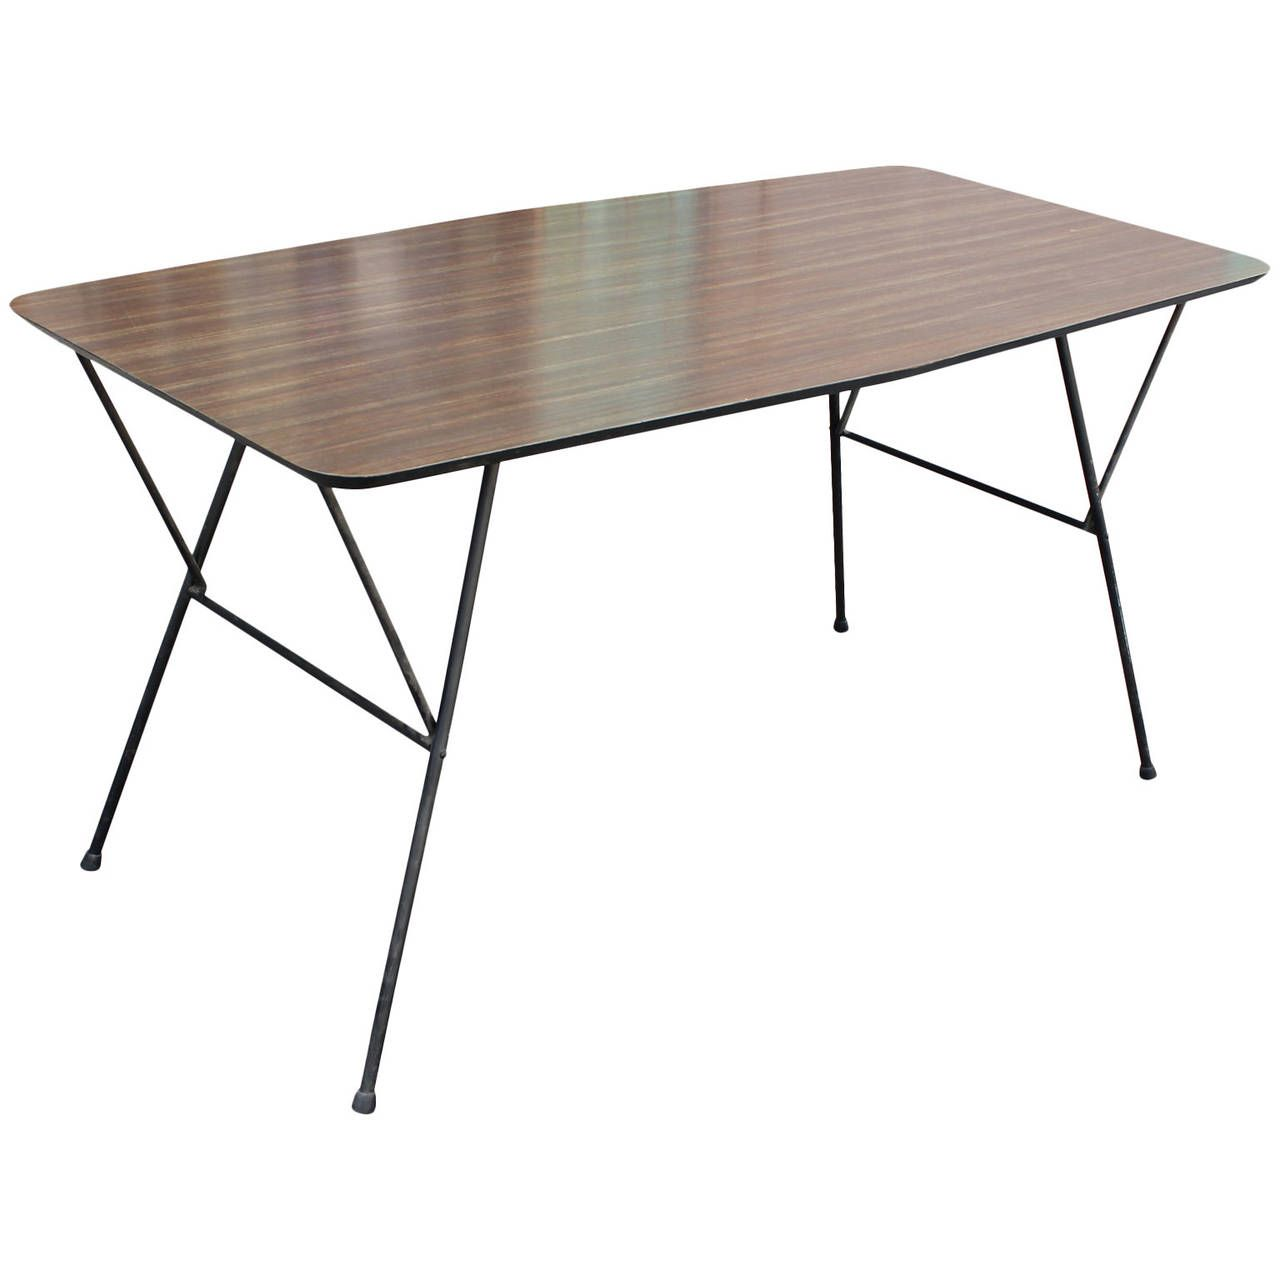 Mid Century Modern Versi Table By Tepper Meyer For Fred Meyer